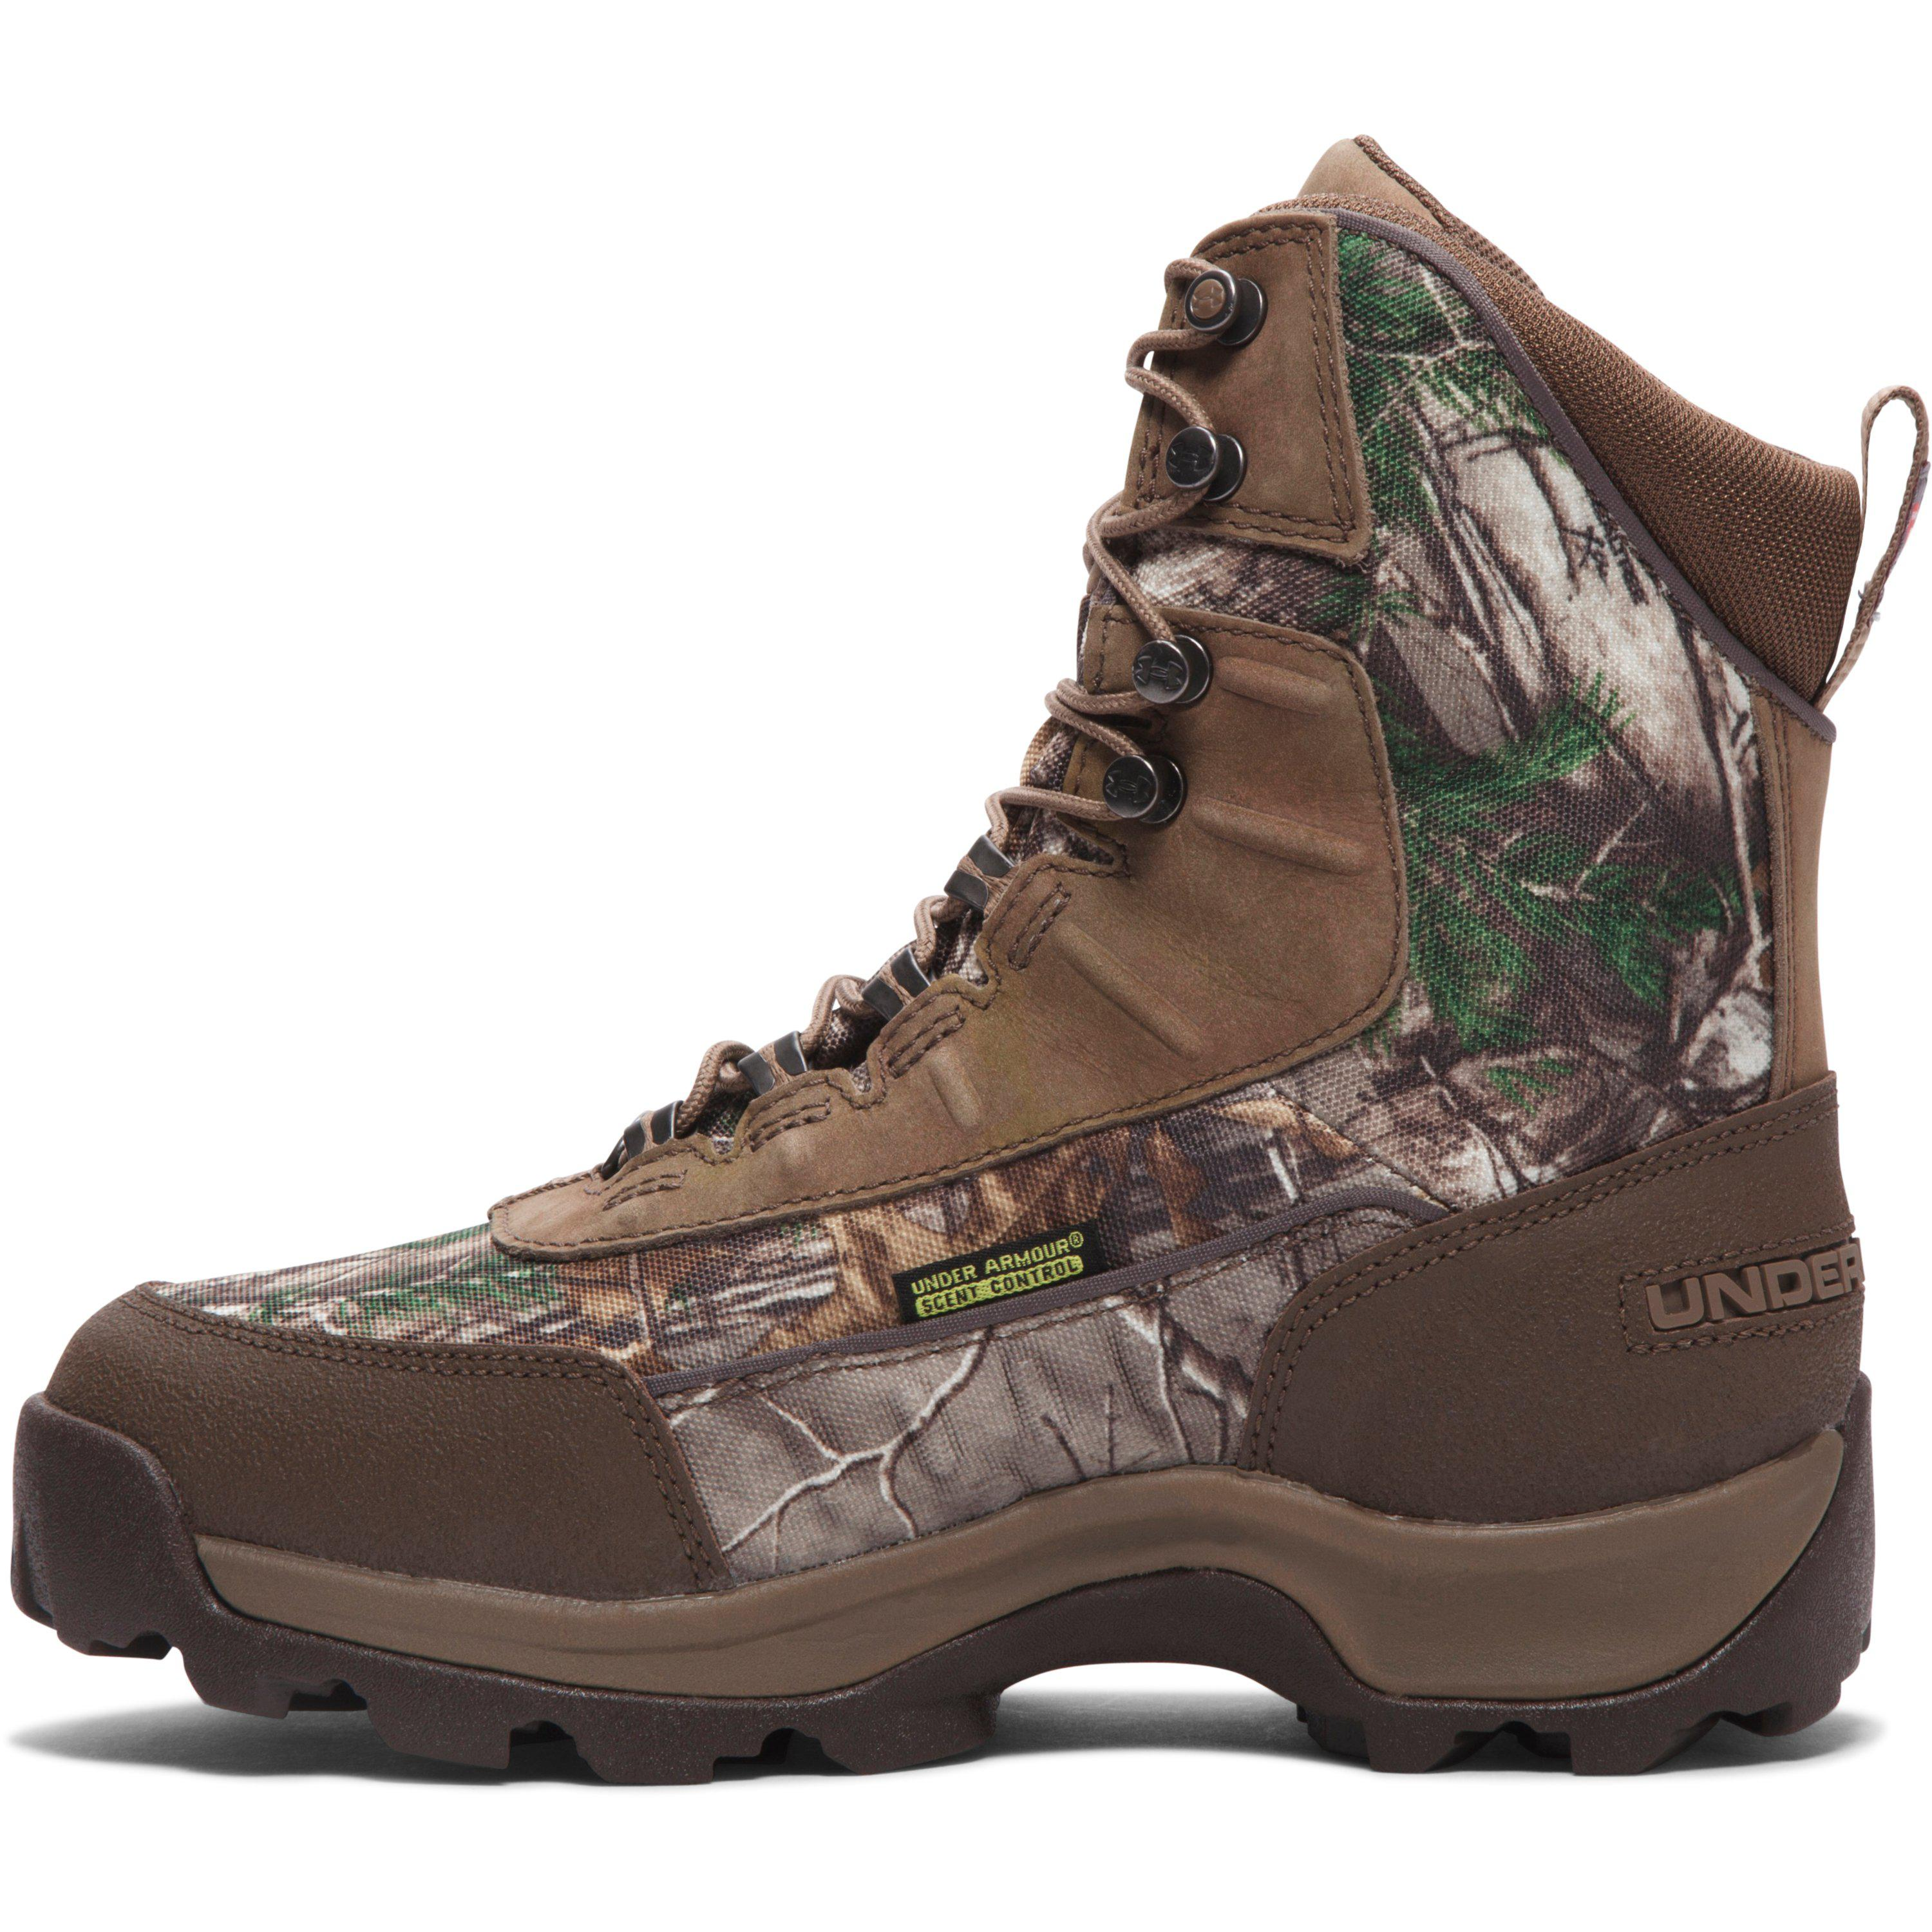 4e6534da89359 Under Armour Women's Ua Brow Tine 800 Hunting Boot - Lyst